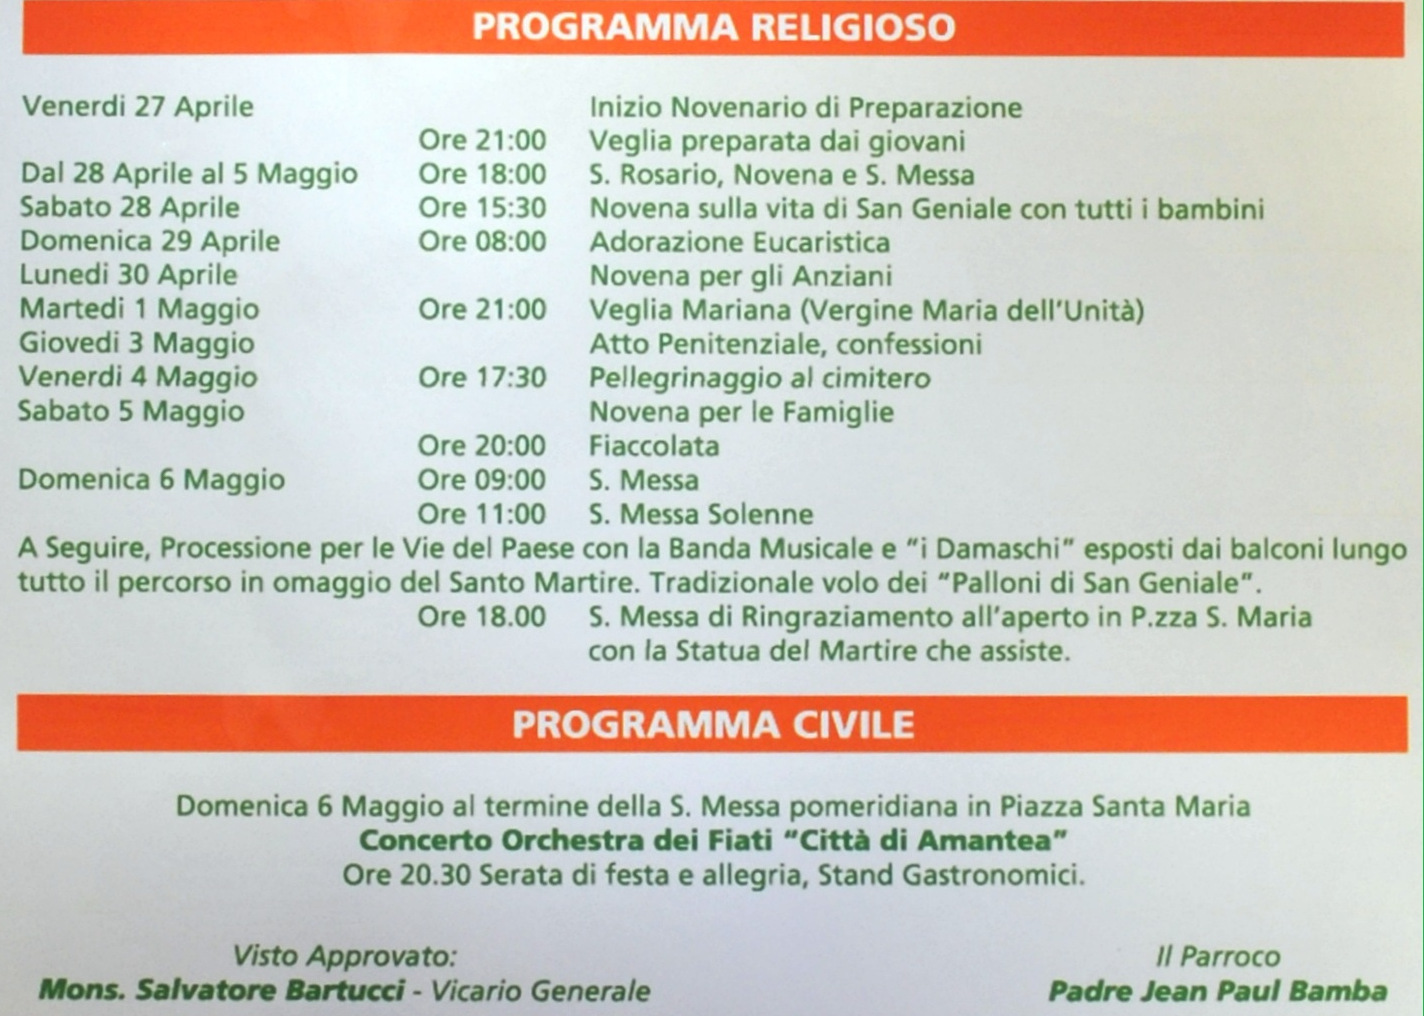 Thumbnail image for /public/upload/2012/5/634718153685816717_San Geniale 2012 programma.jpg